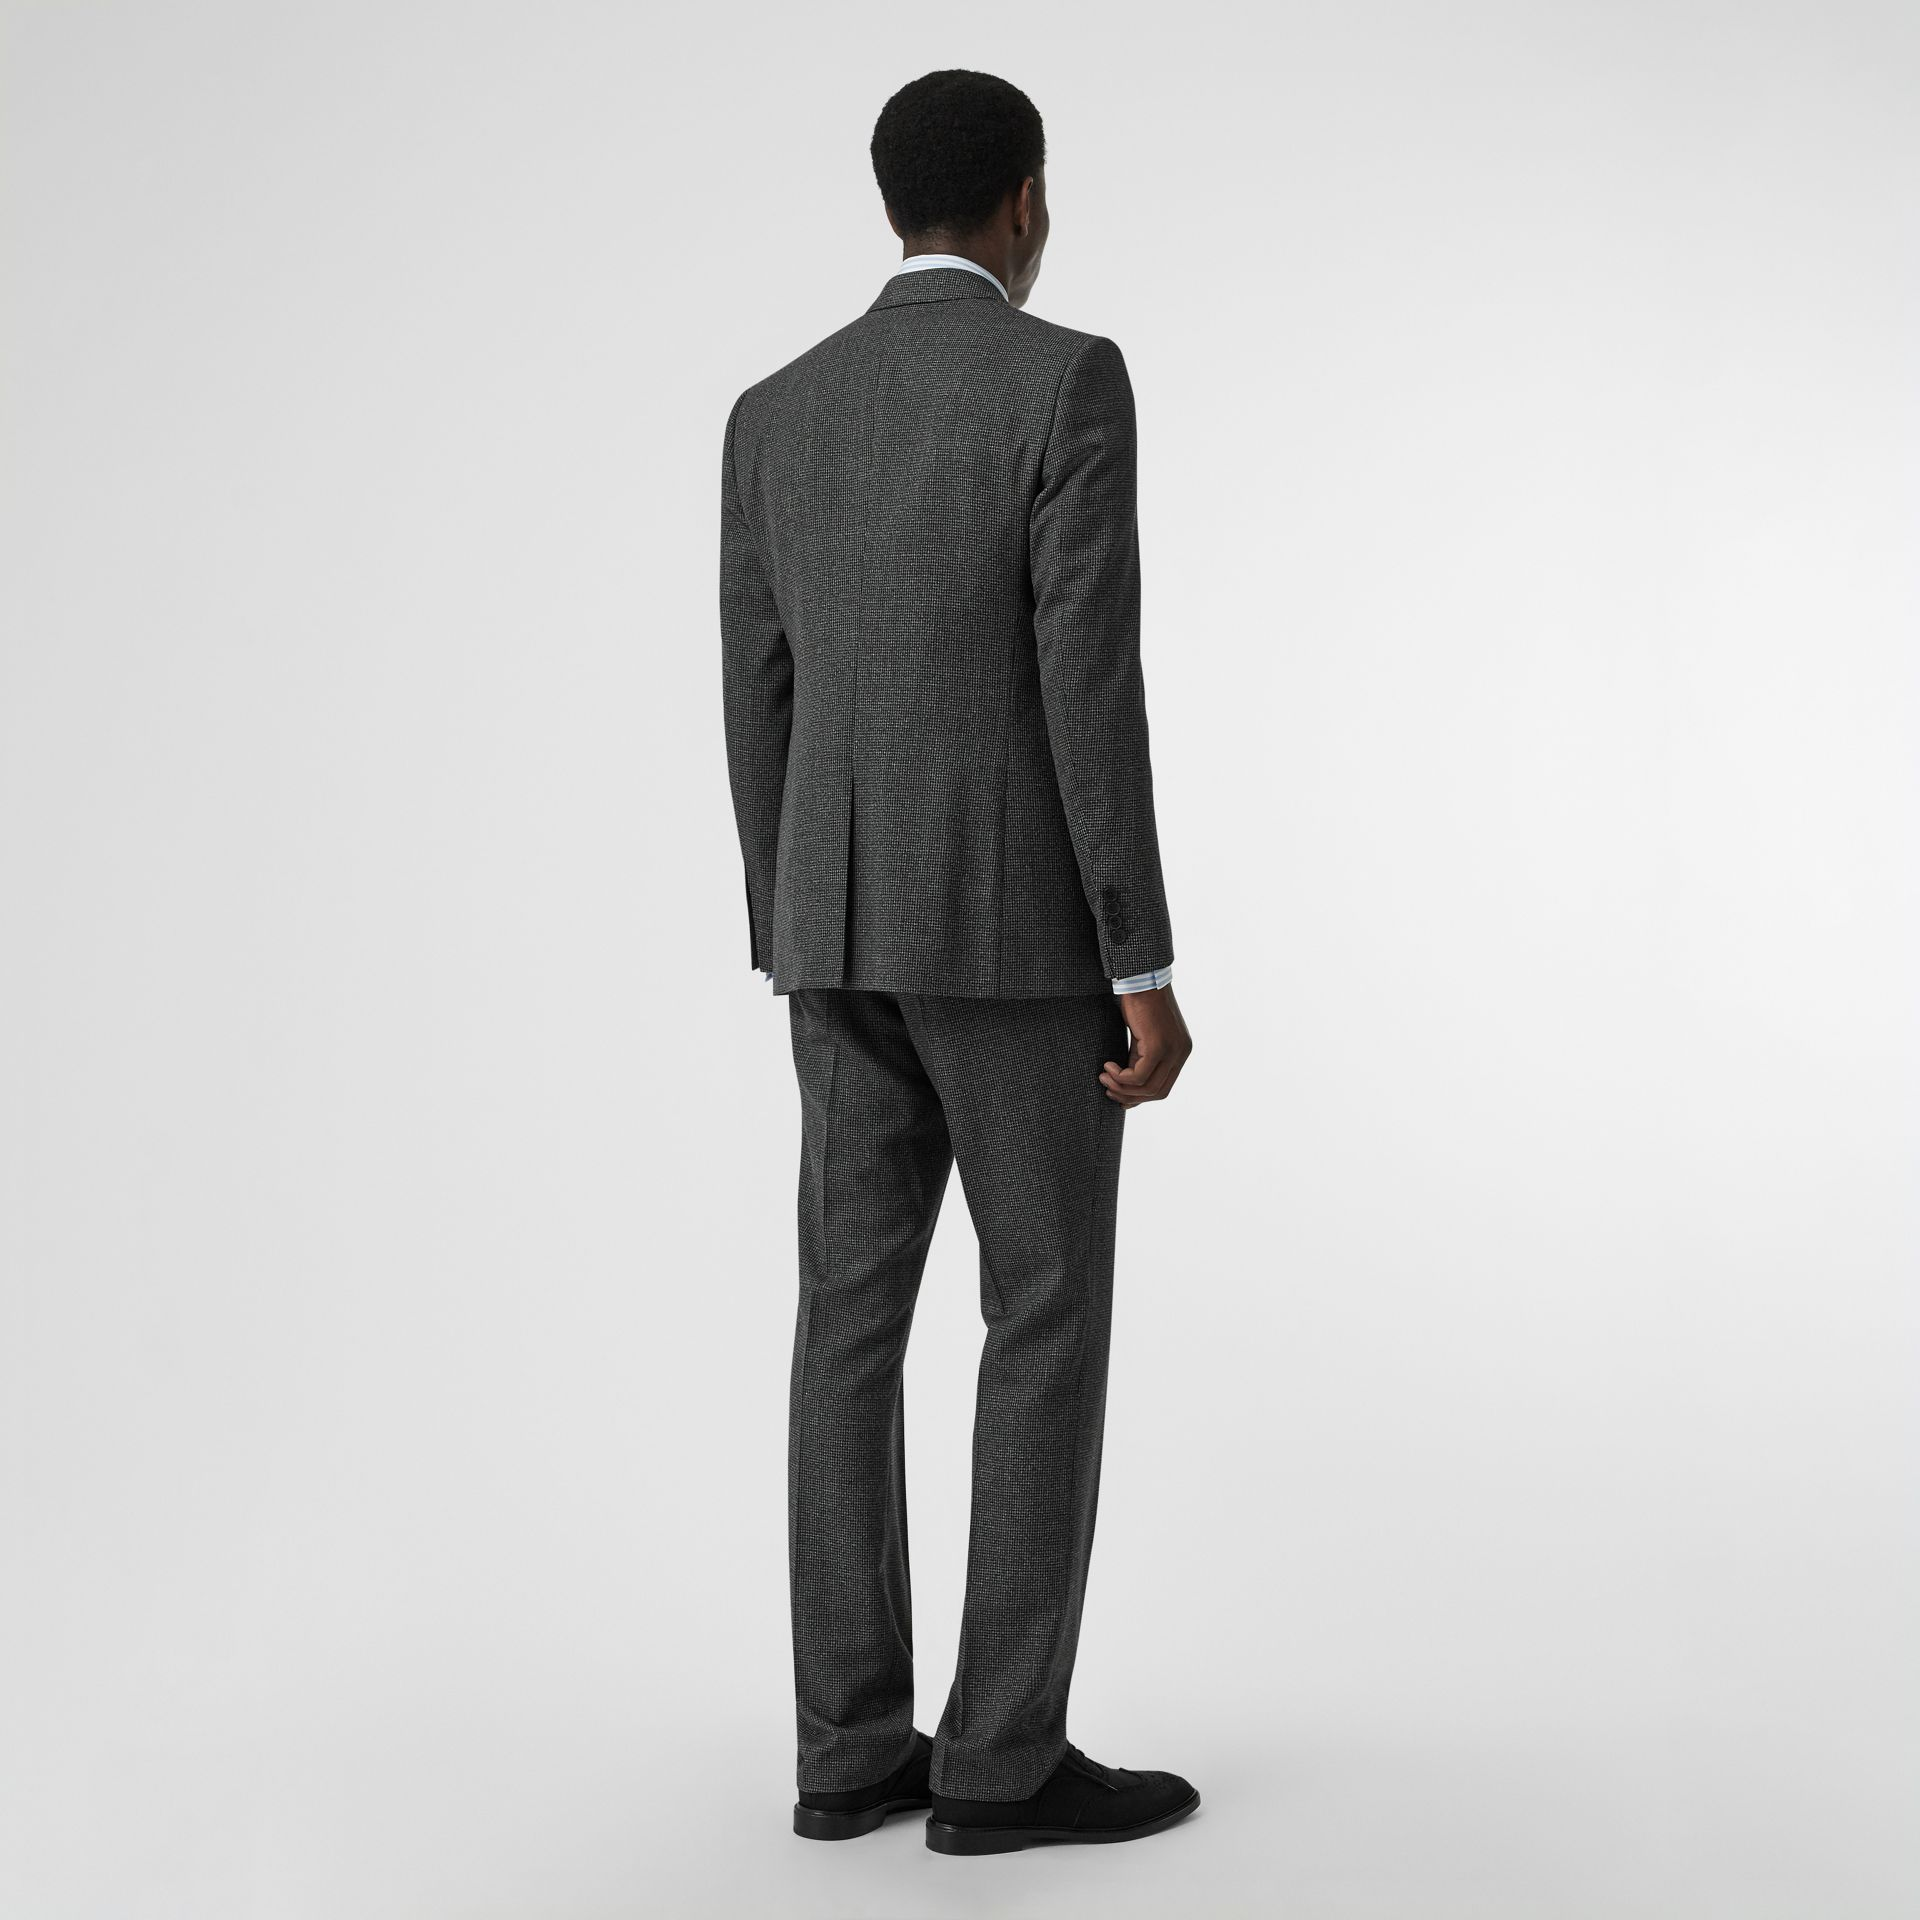 English Fit Puppytooth Check Wool Suit in Charcoal Melange - Men | Burberry - gallery image 1